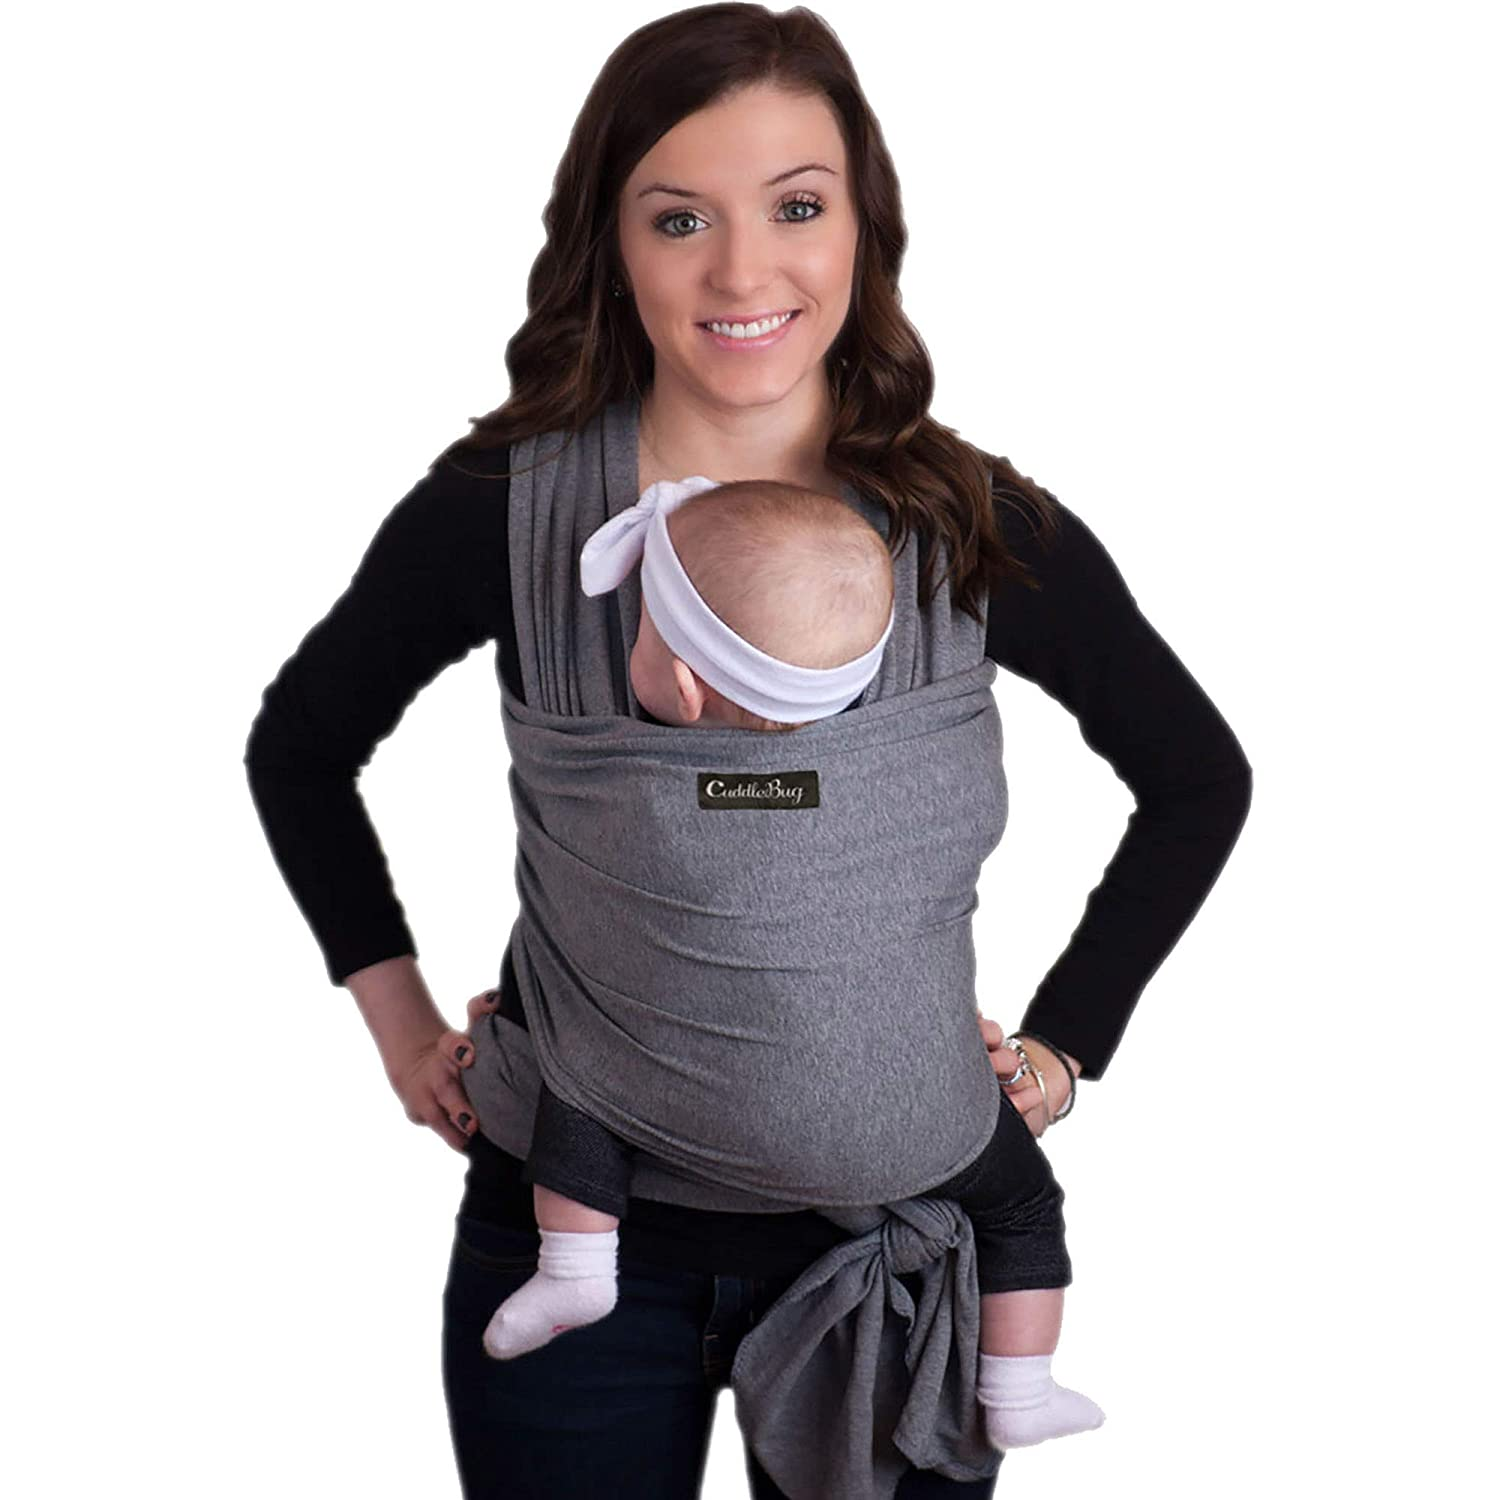 9-in-1 CuddleBug Baby Wrap Sling Carrier – Newborns Toddlers up to 36 lbs – Hands Free – Gentle, Stretch Fabric – Ideal for Baby Showers – One Size Fits All Grey